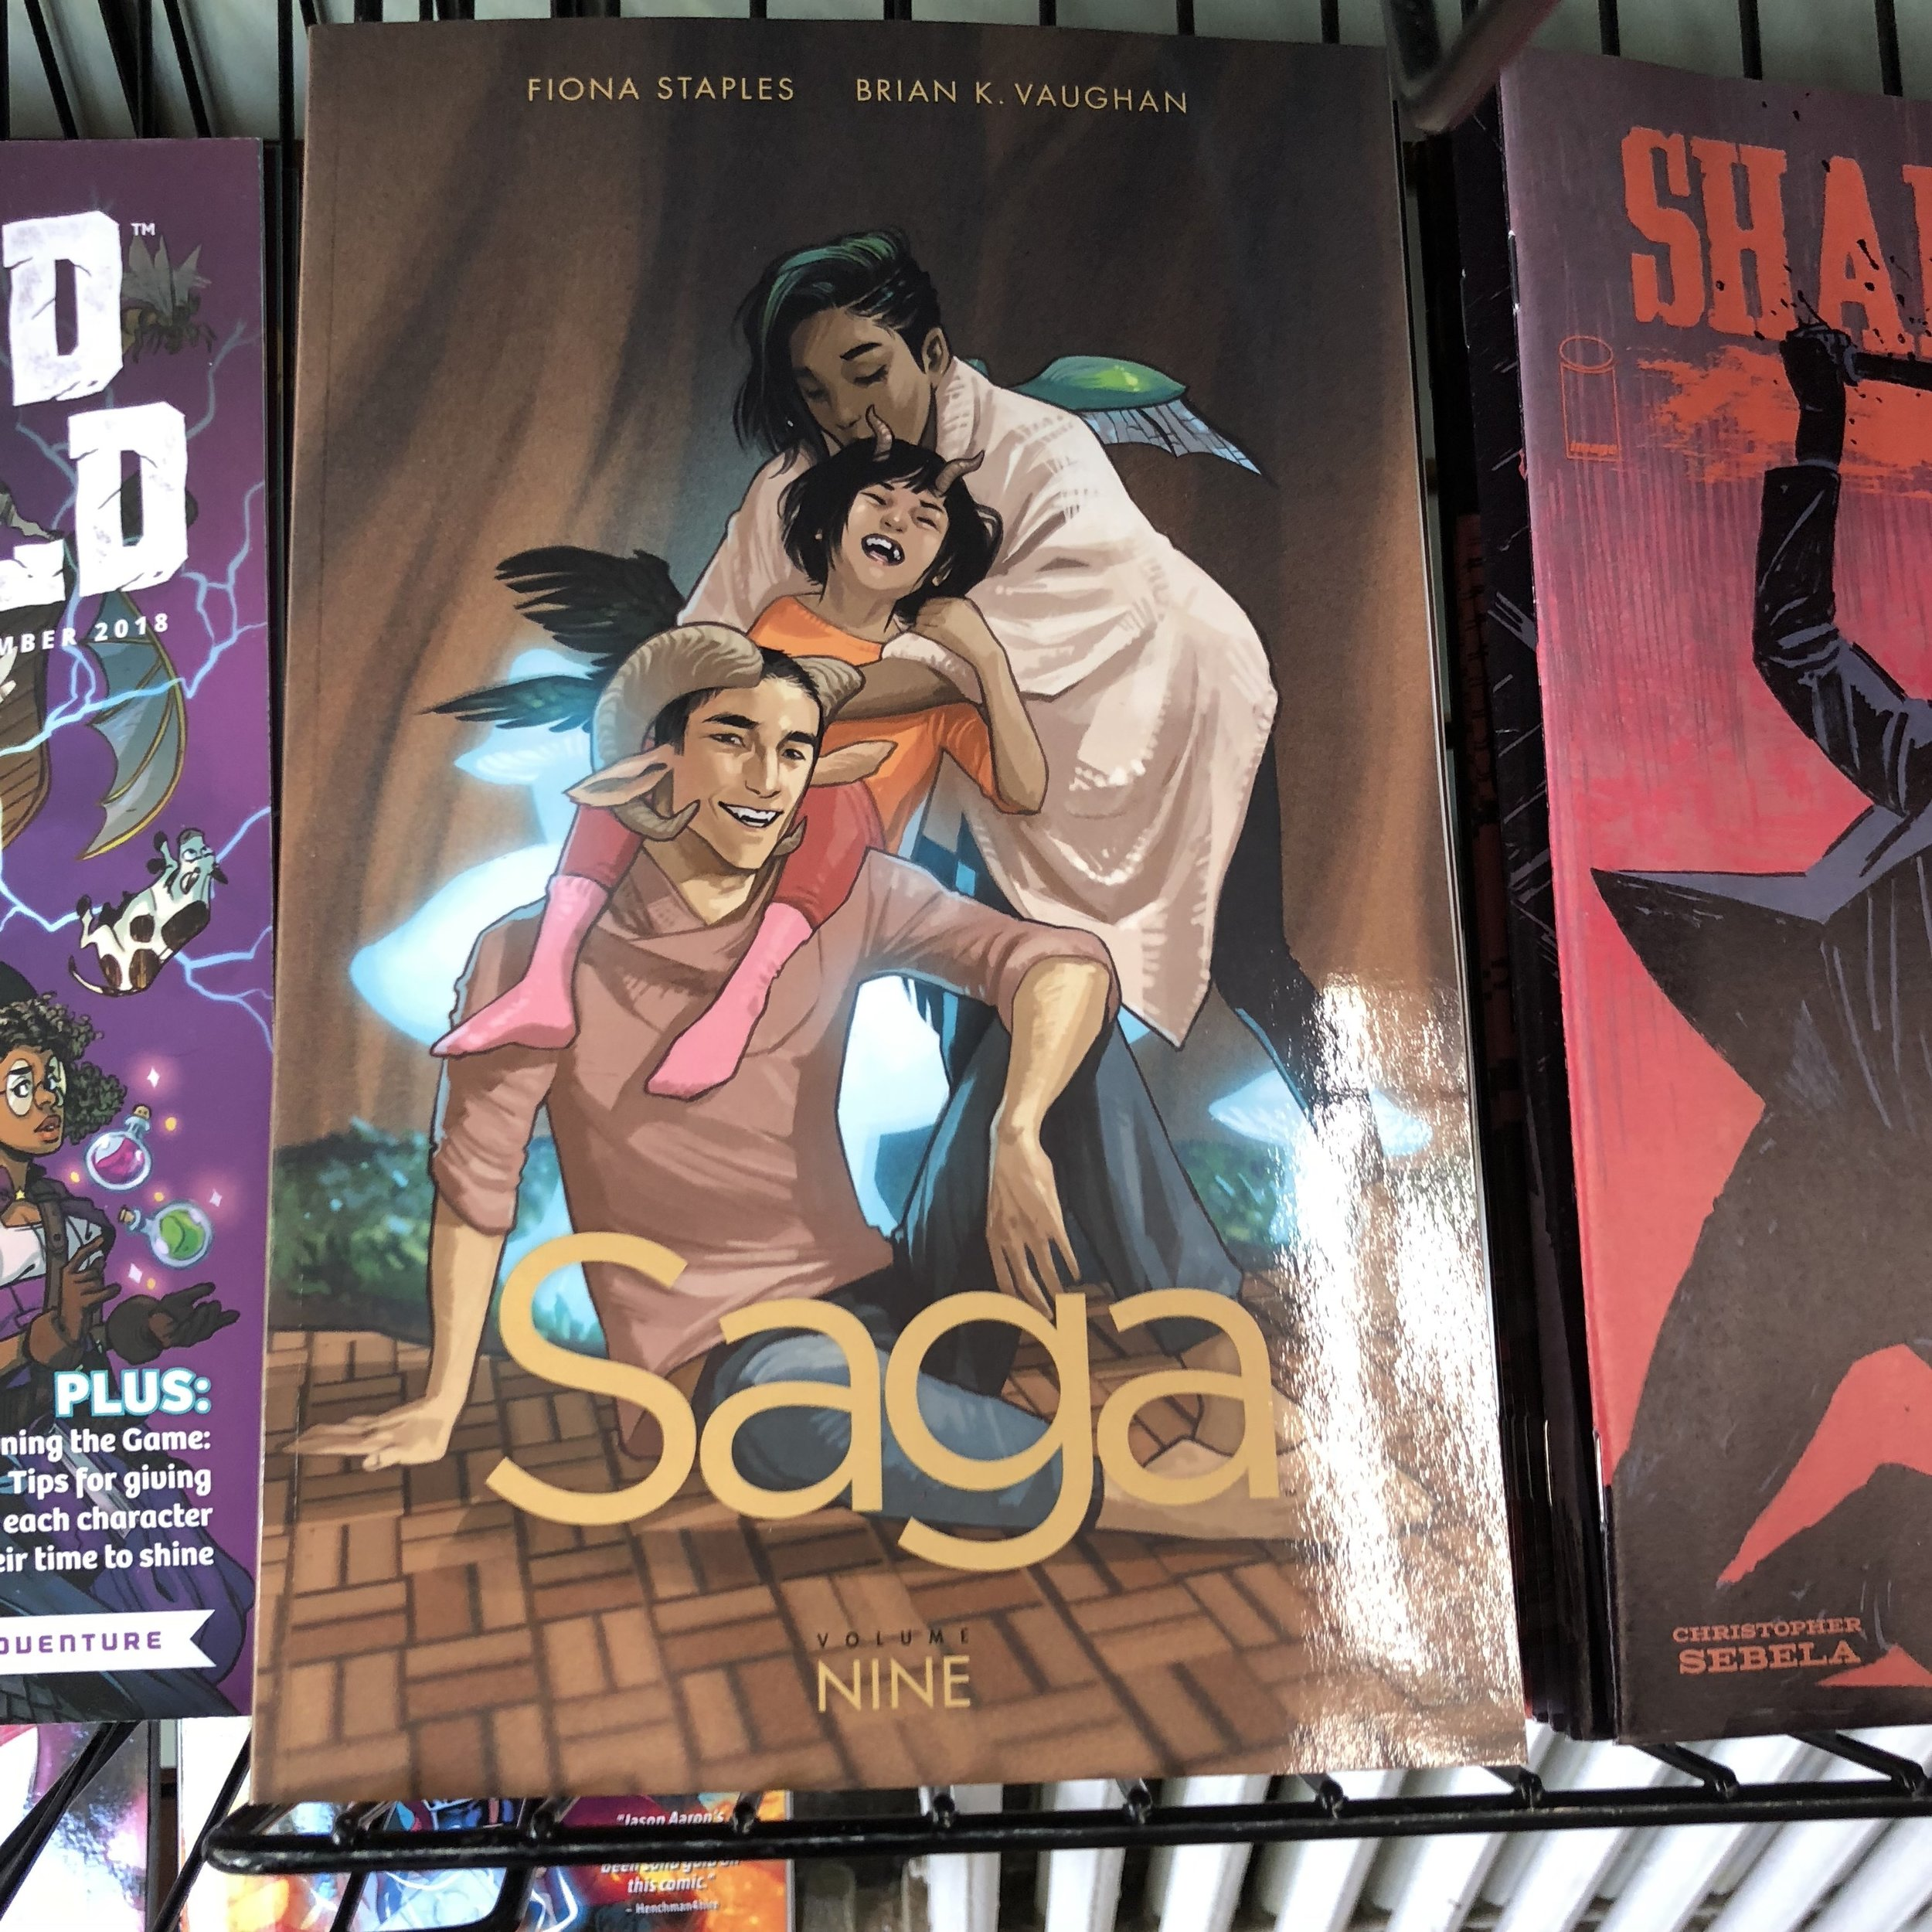 SAGA V9 TP - It's out. It's got… stuff that happens. I don't want to talk about it.